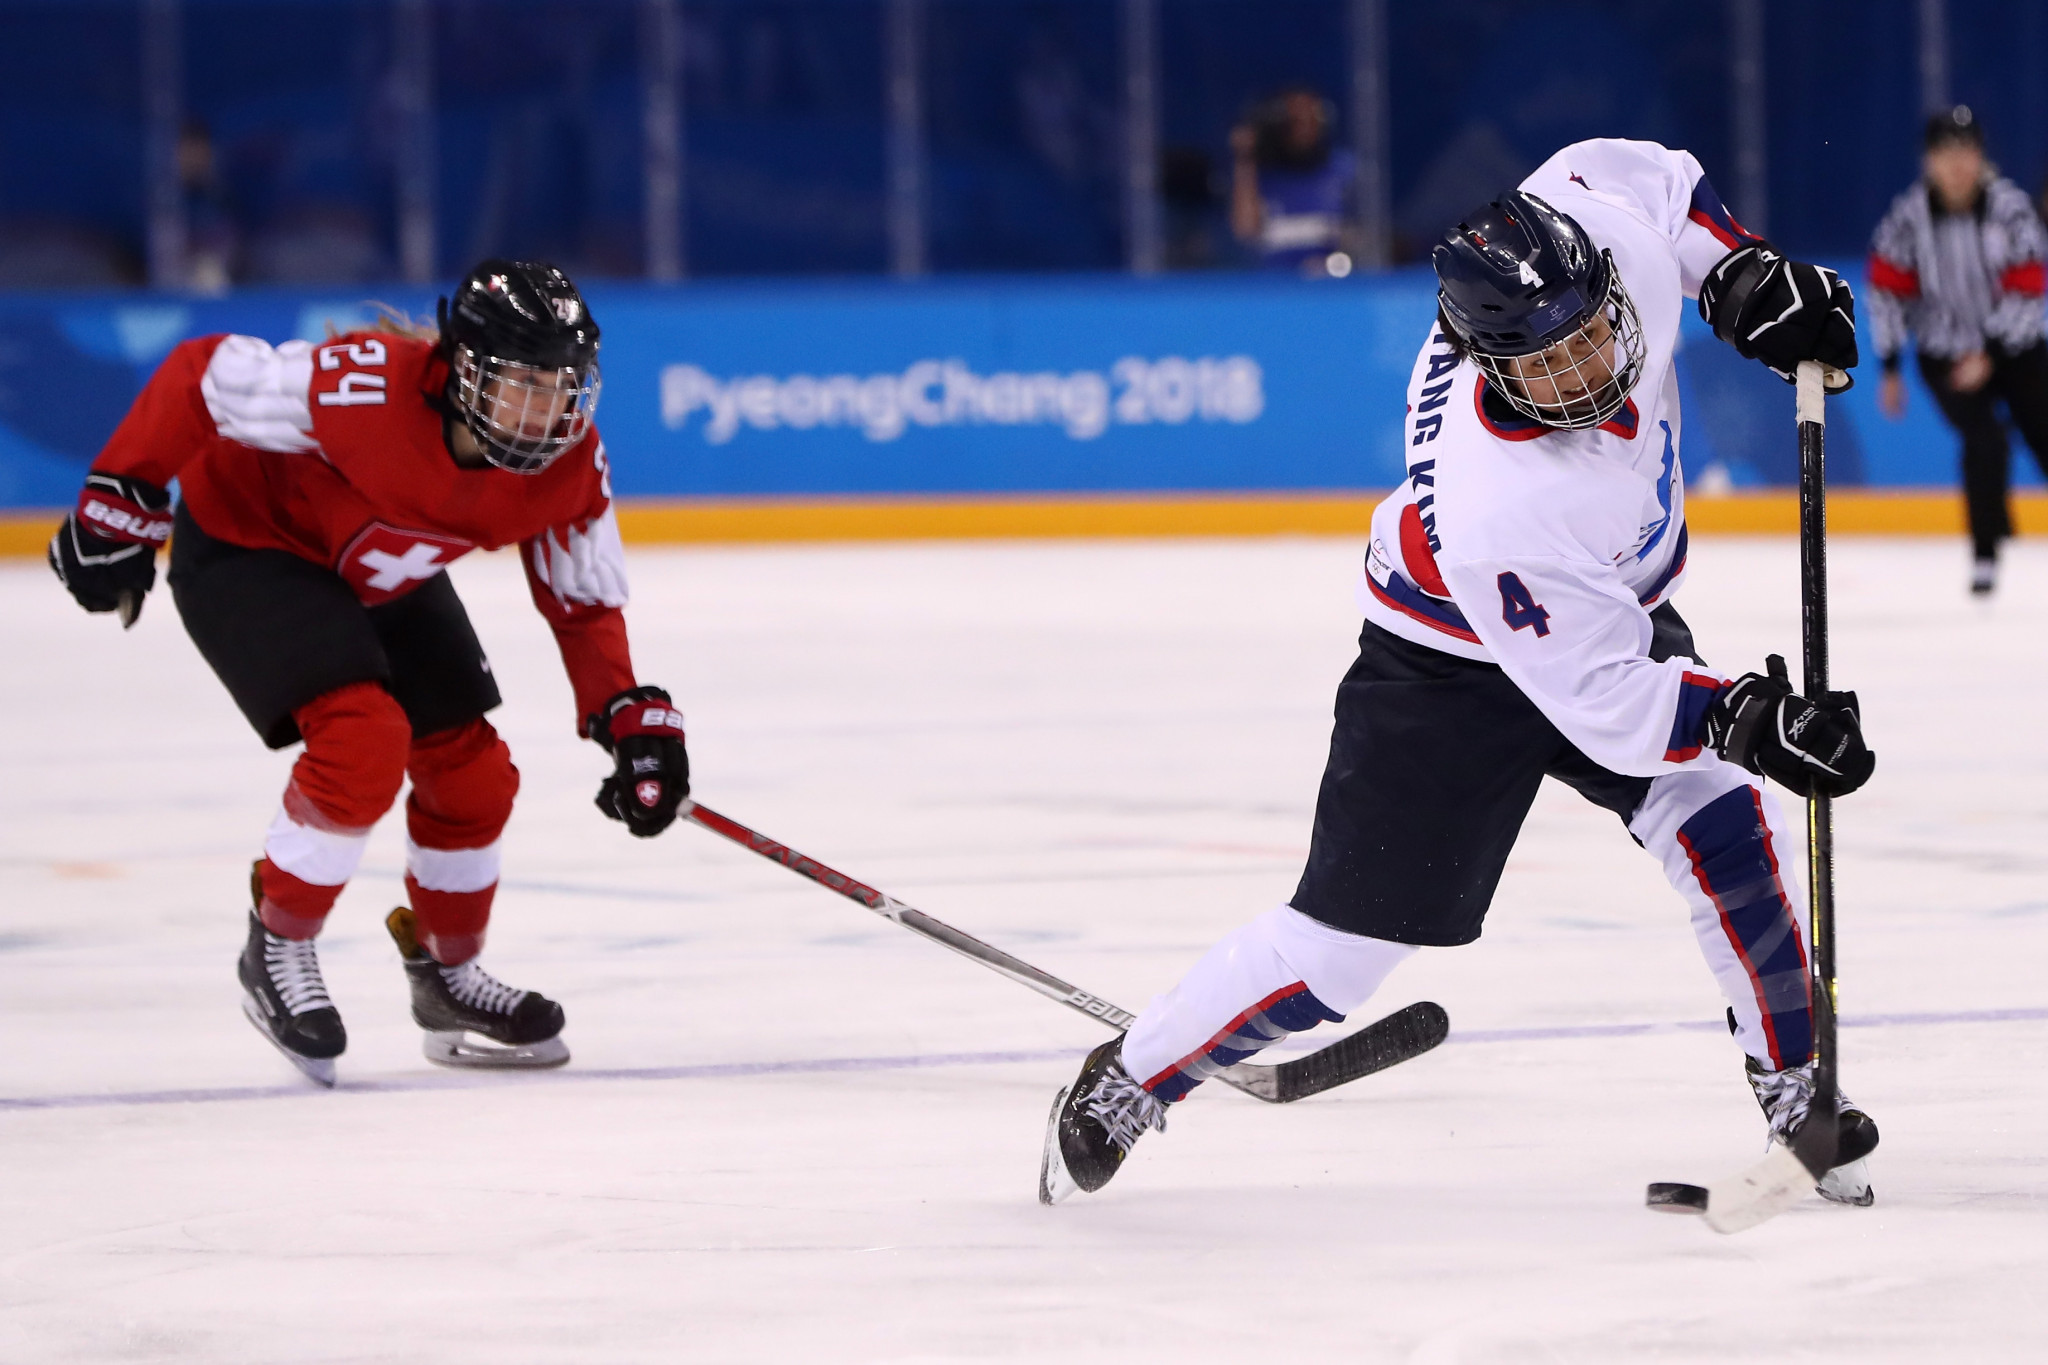 WADA opted not to appeal a decision to clear North Korean ice hockey player Un Hyang Kim of a doping offence ©Getty Images